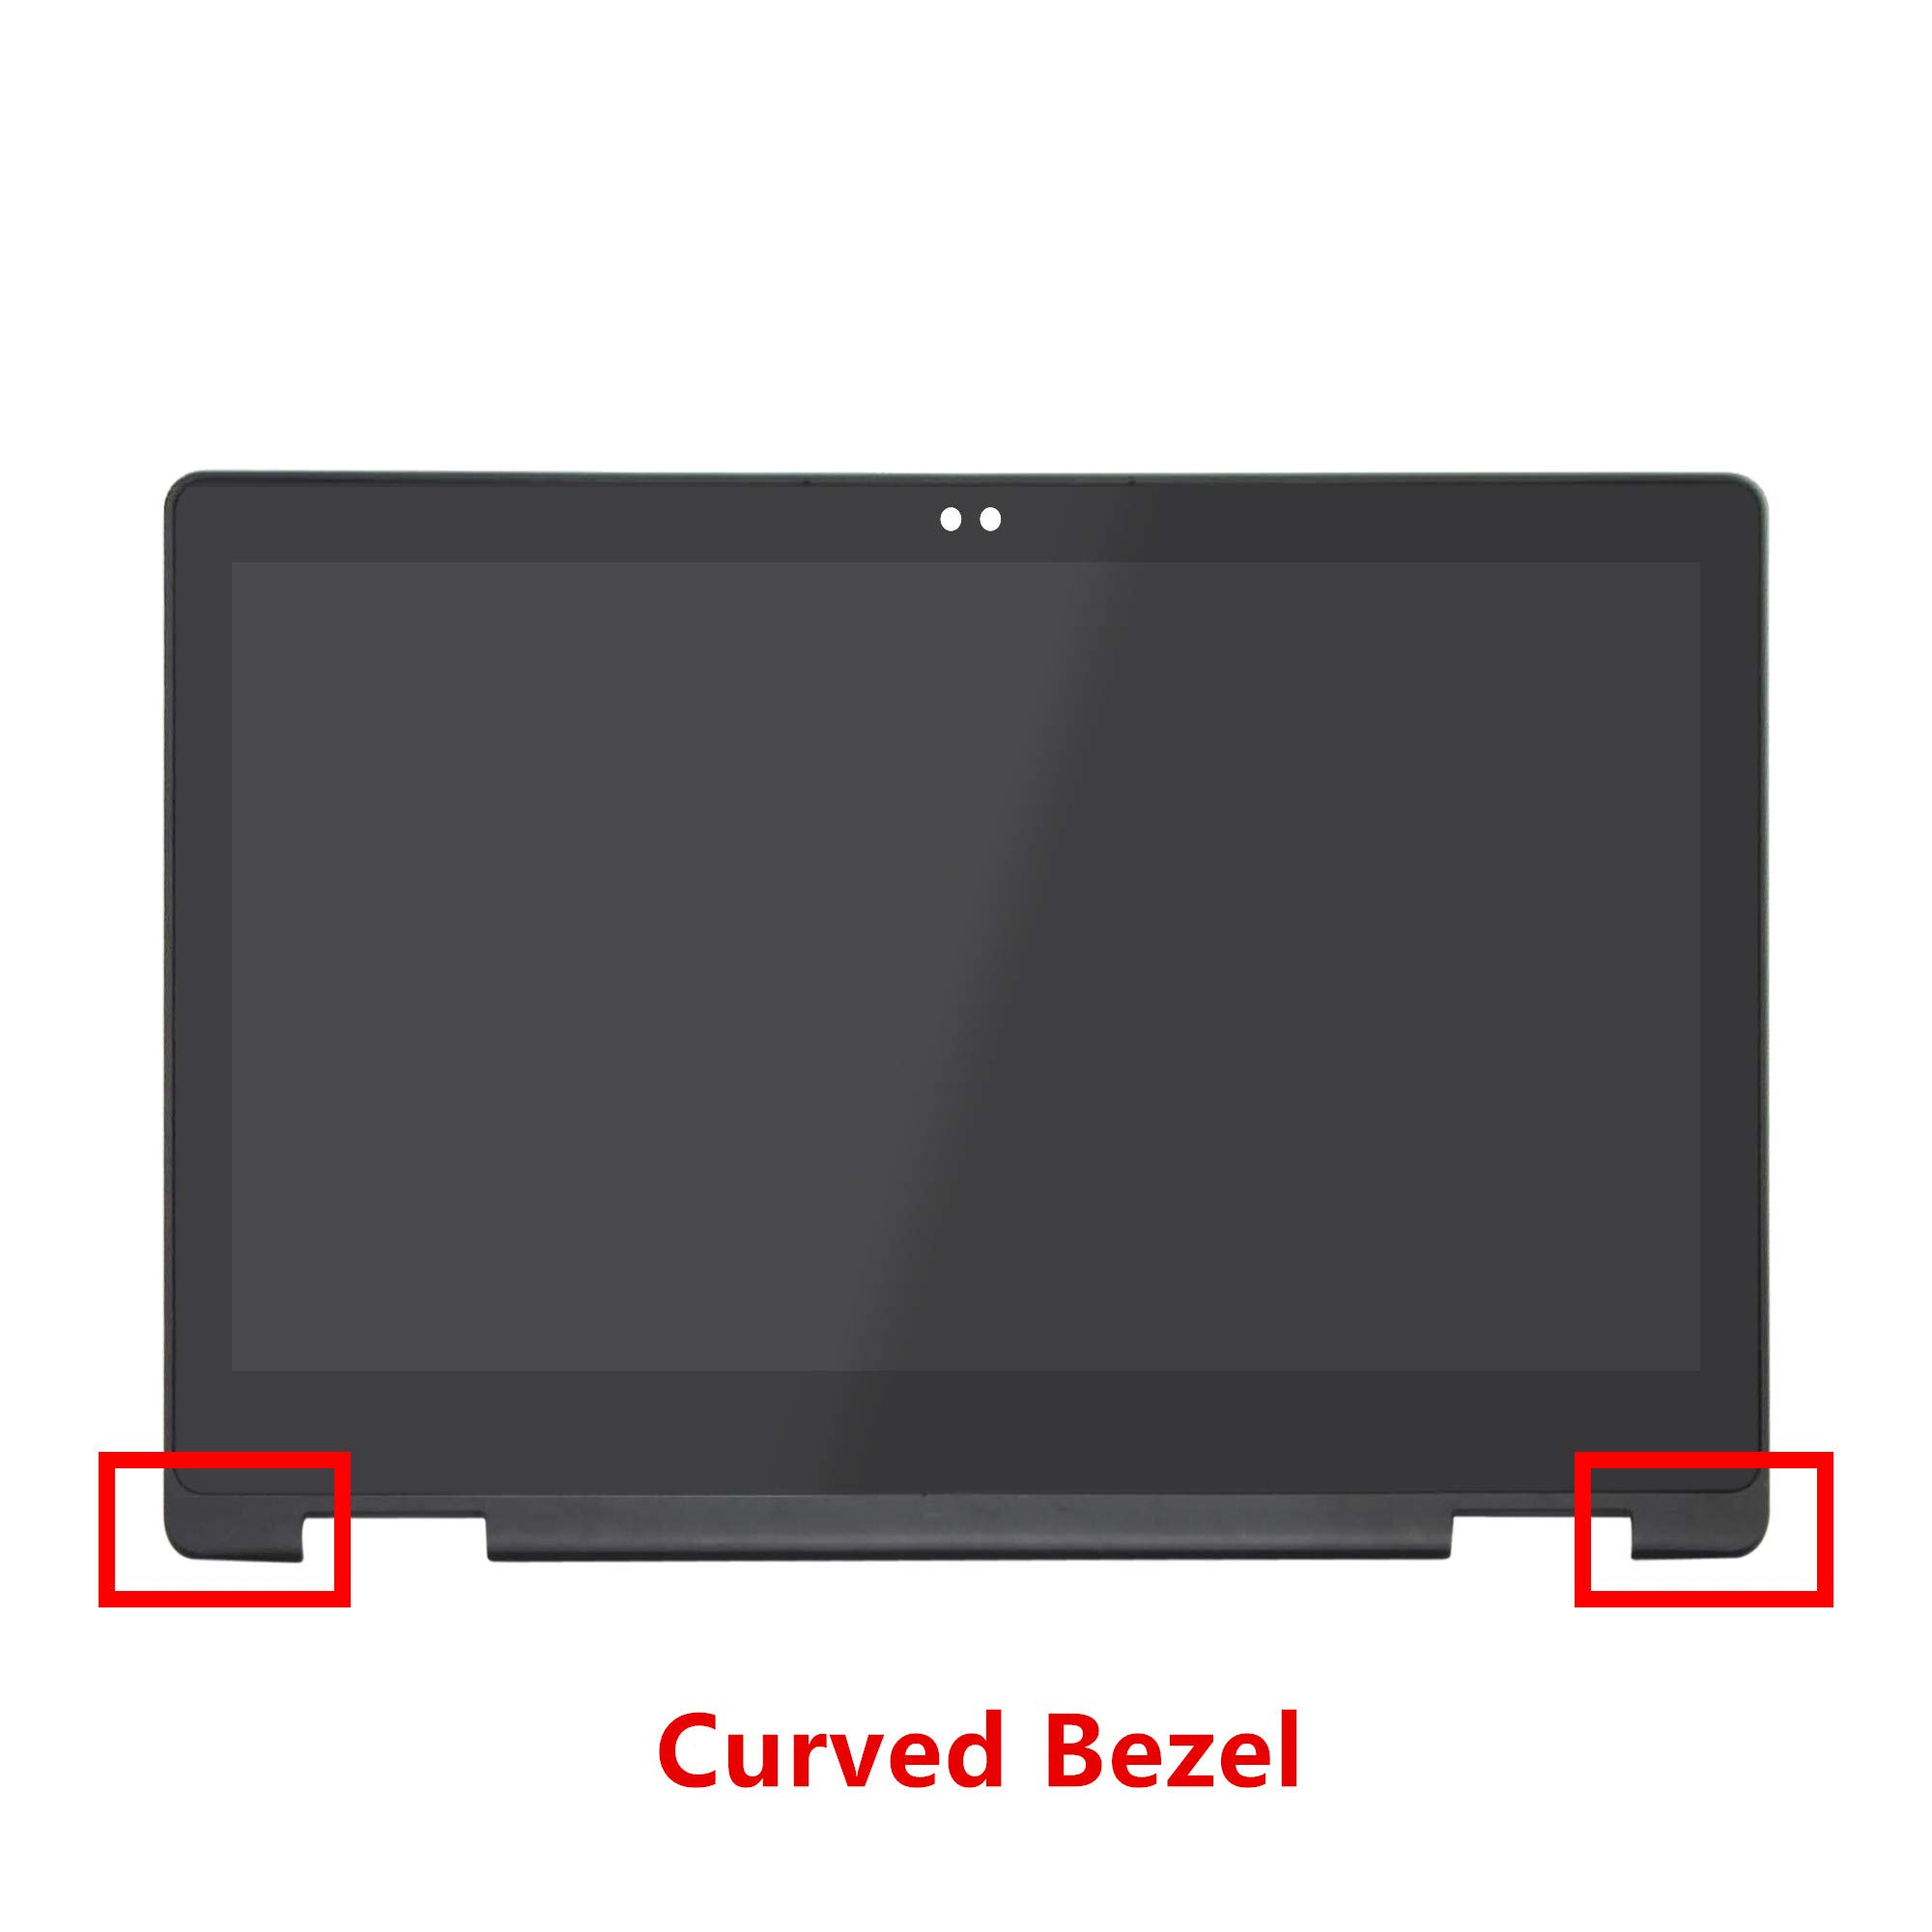 LCDOLED 13.3 inch FullHD 1080P B133HAB01.0 / NV133FHM-N41 LED LCD Display Touch Screen Digitizer Assembly + Curved Bezel for Dell Inspiron 13 P69G P69G001 (NOT for LP133WF2/NV133FHM-N45/N133HCE-EAA)